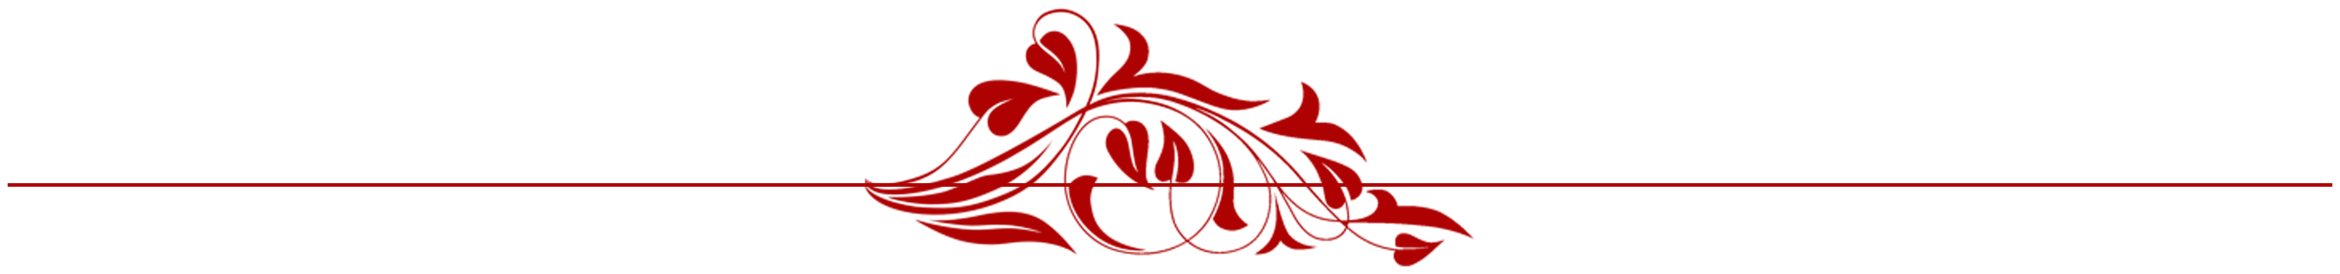 Red divider png. Ceballos diaz funeral home